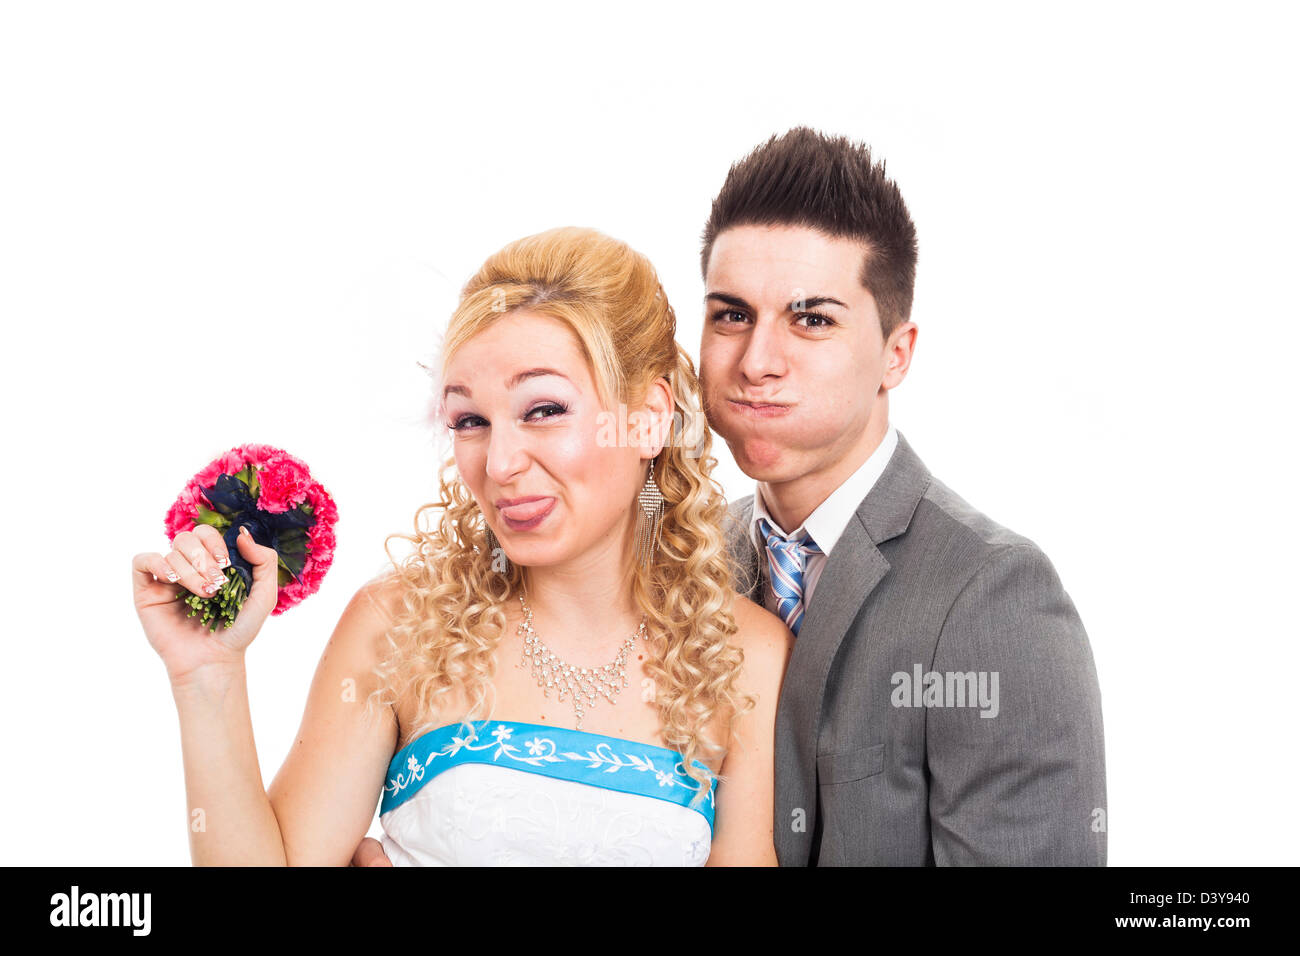 Wedding couple making funny faces, isolated on white background. - Stock Image